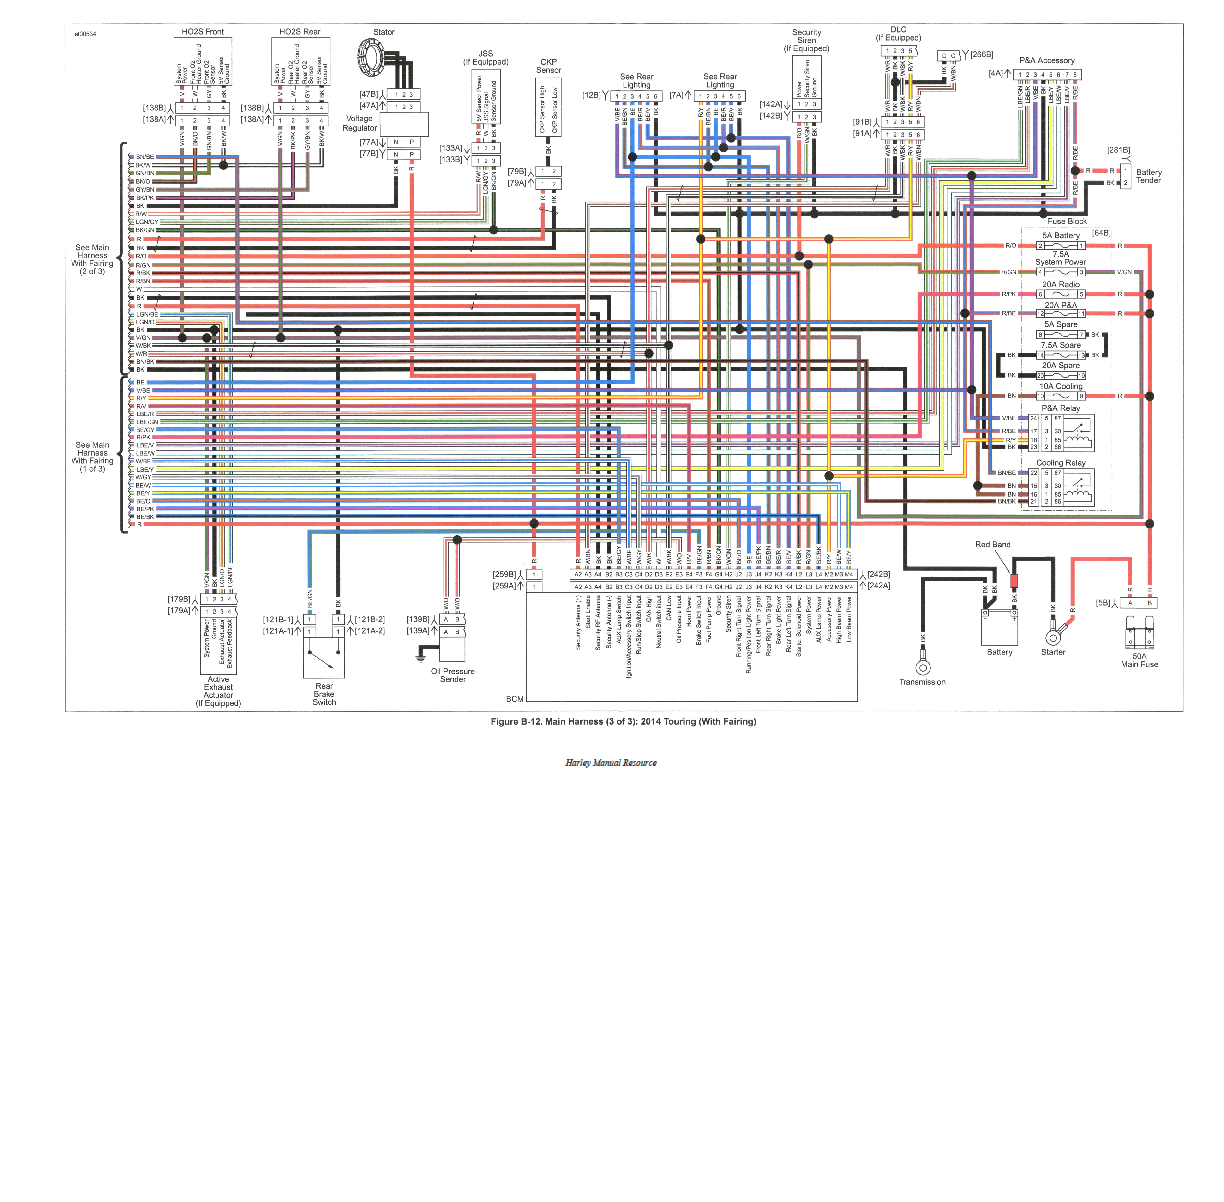 Harley Street Glide Radio Wiring Diagram - Wiring Diagram Article on harley street glide radio cover, harley davidson tachometer wiring diagram, harley-davidson headlight wiring diagram,